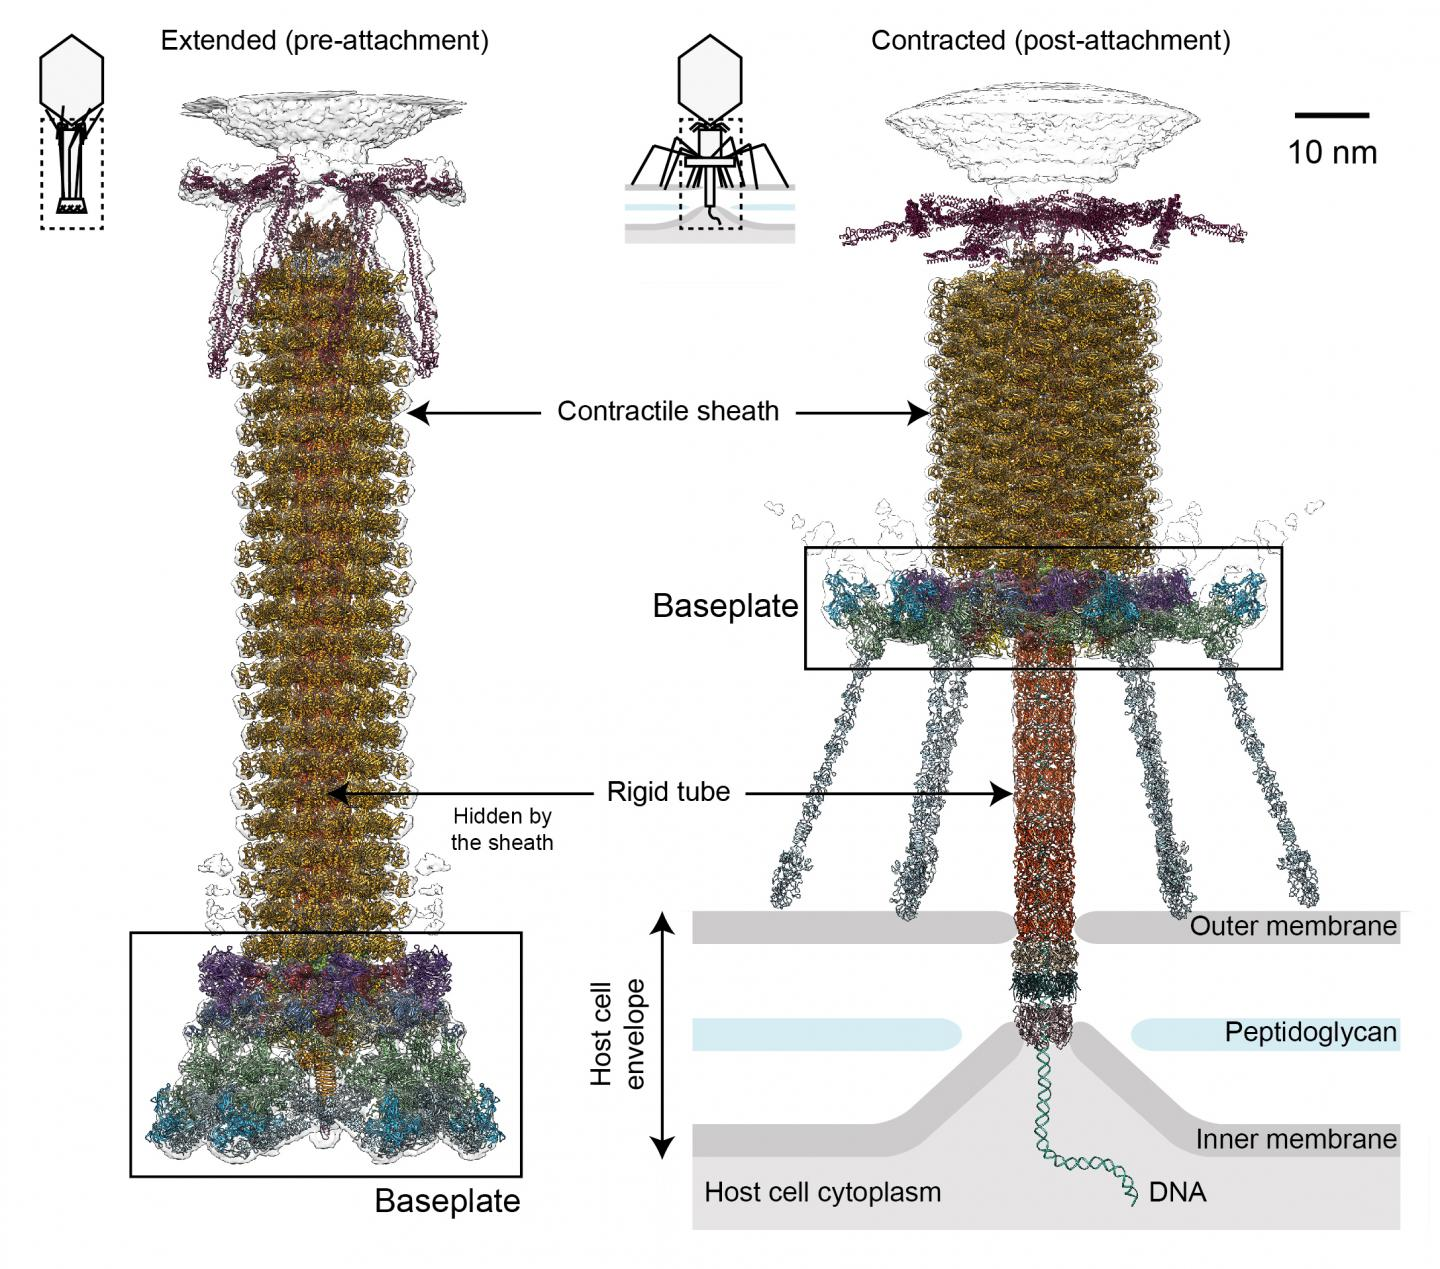 The Tail of Bacteriophage T4 is Shown Before (left) and After (right) Binding to a Host Cell